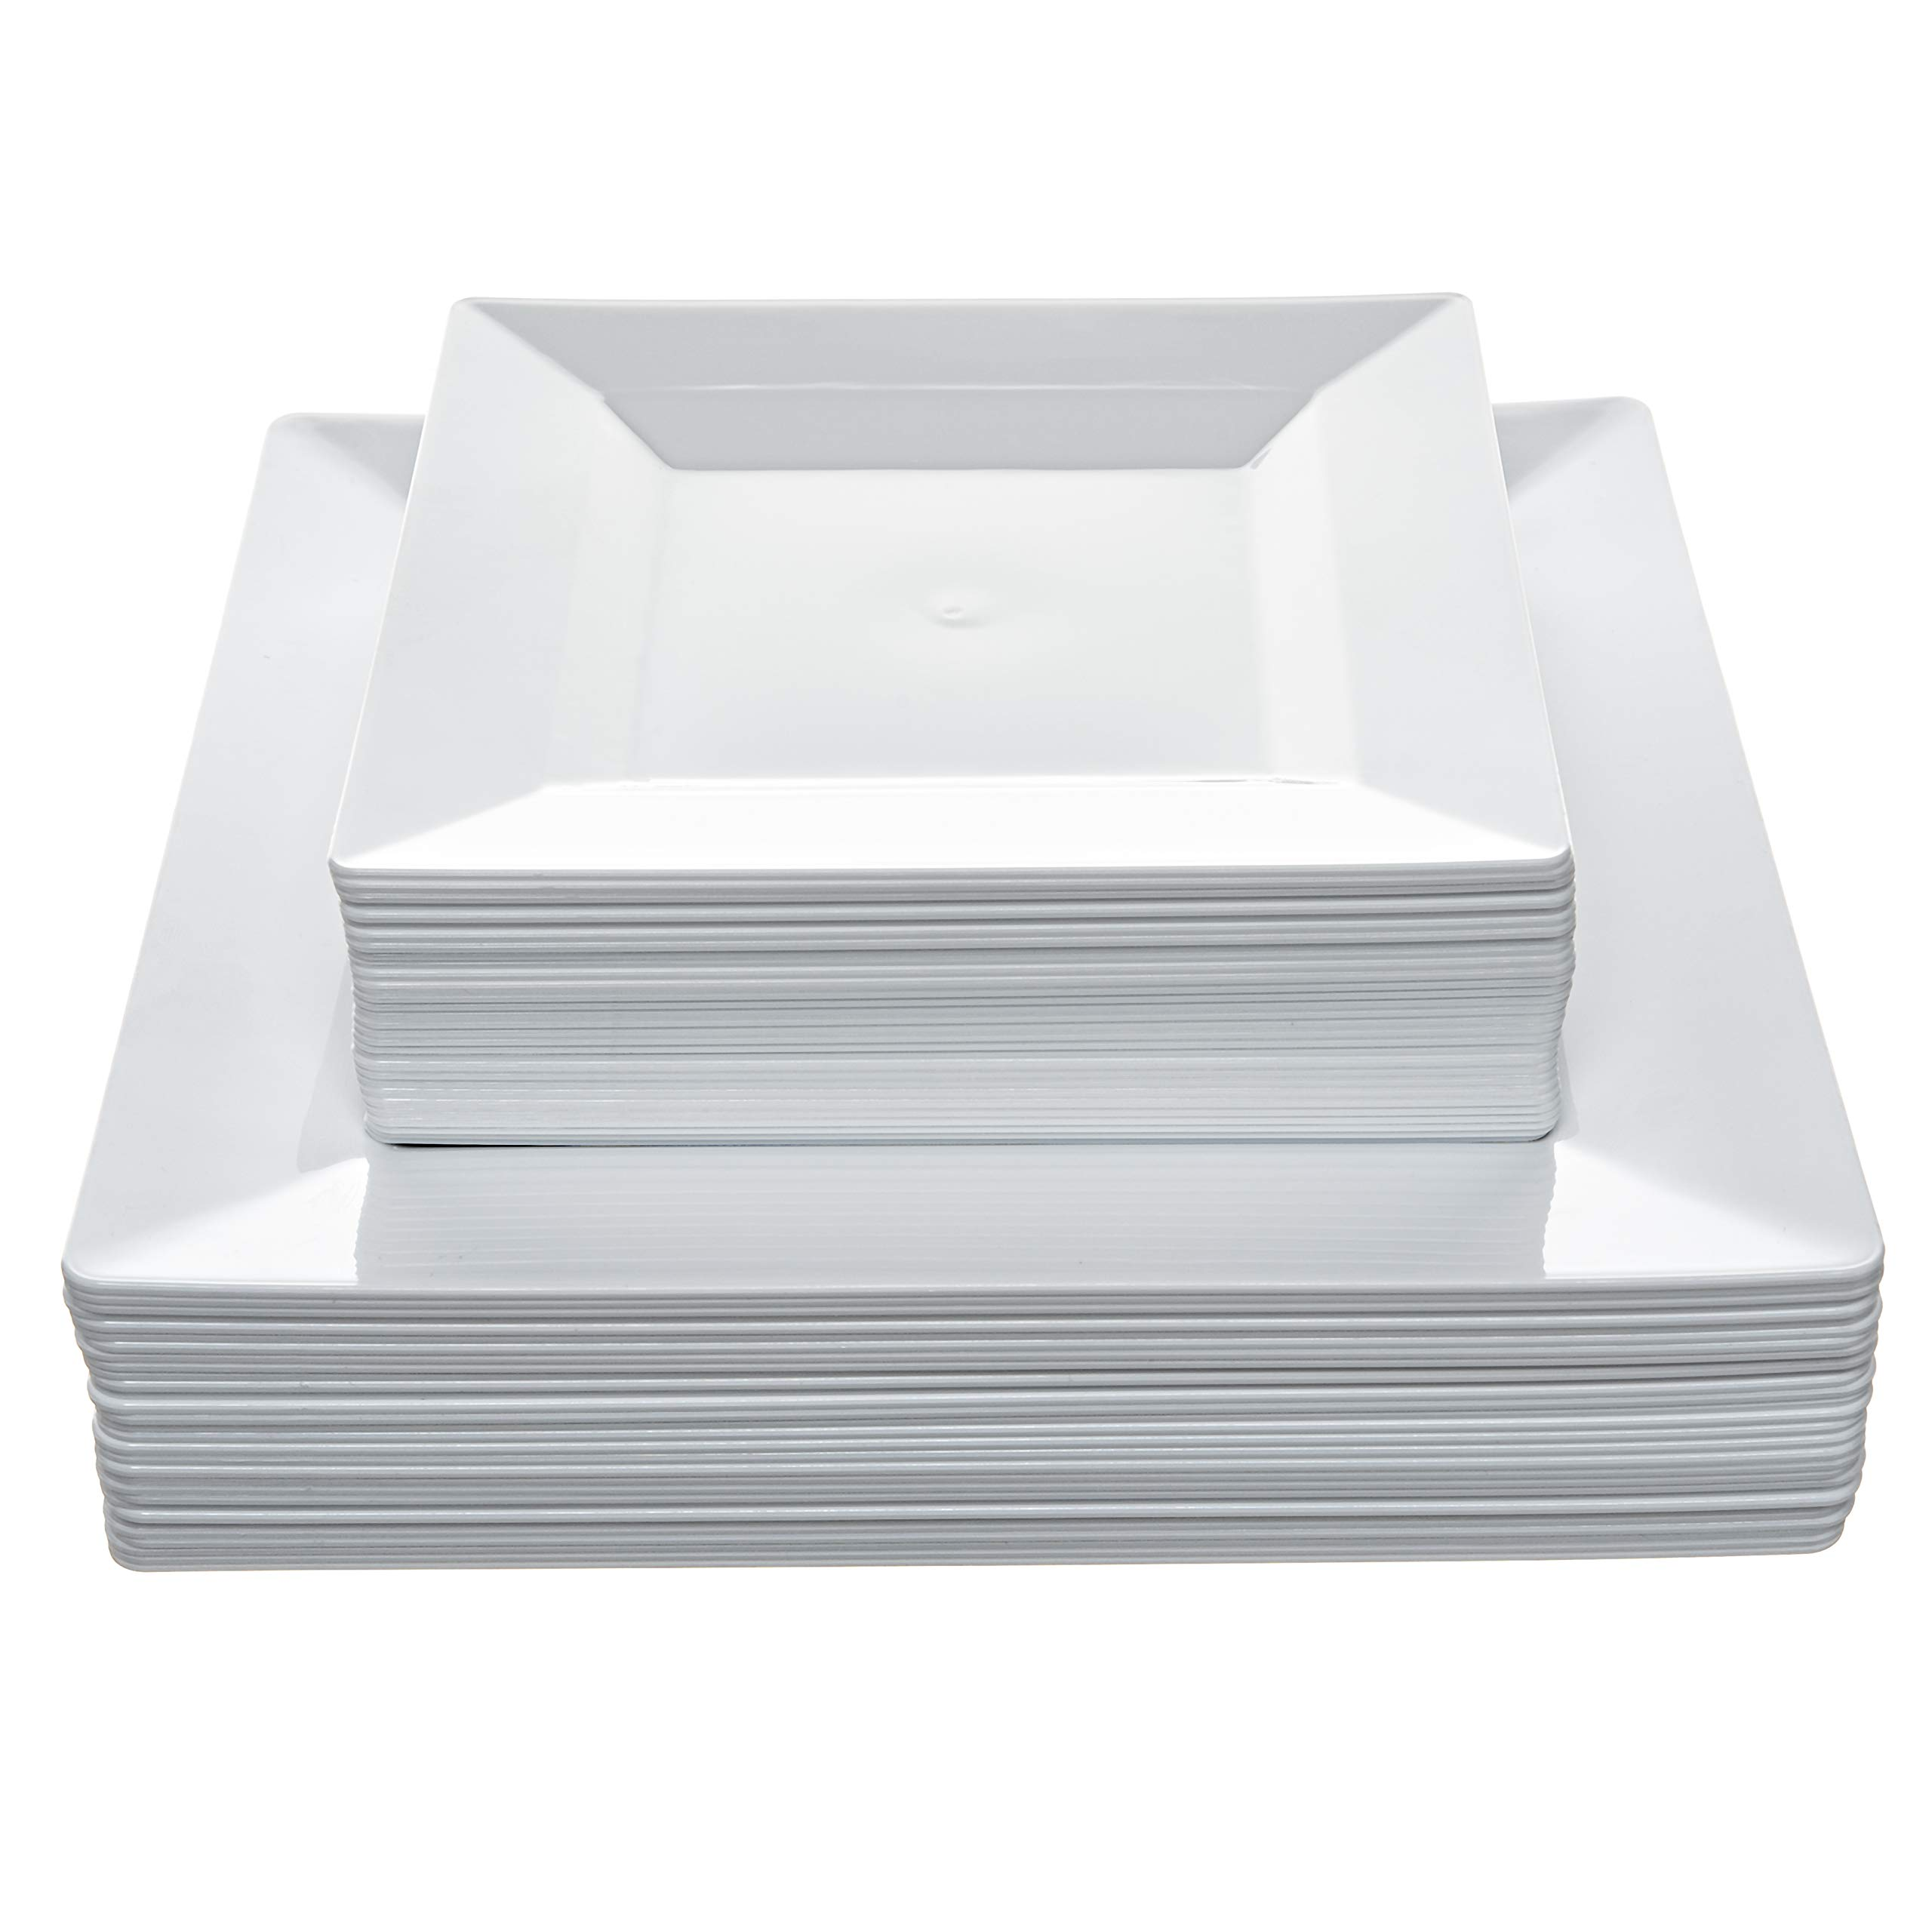 Disposable Square Plastic Plates - 60 Pack - 30 x 9.5'' Dinner and 30 x 6.5'' Salad Combo - Premium Heavy Duty- By Aya's Cutlery Kingdom by Aya's Cutlery Kingdom